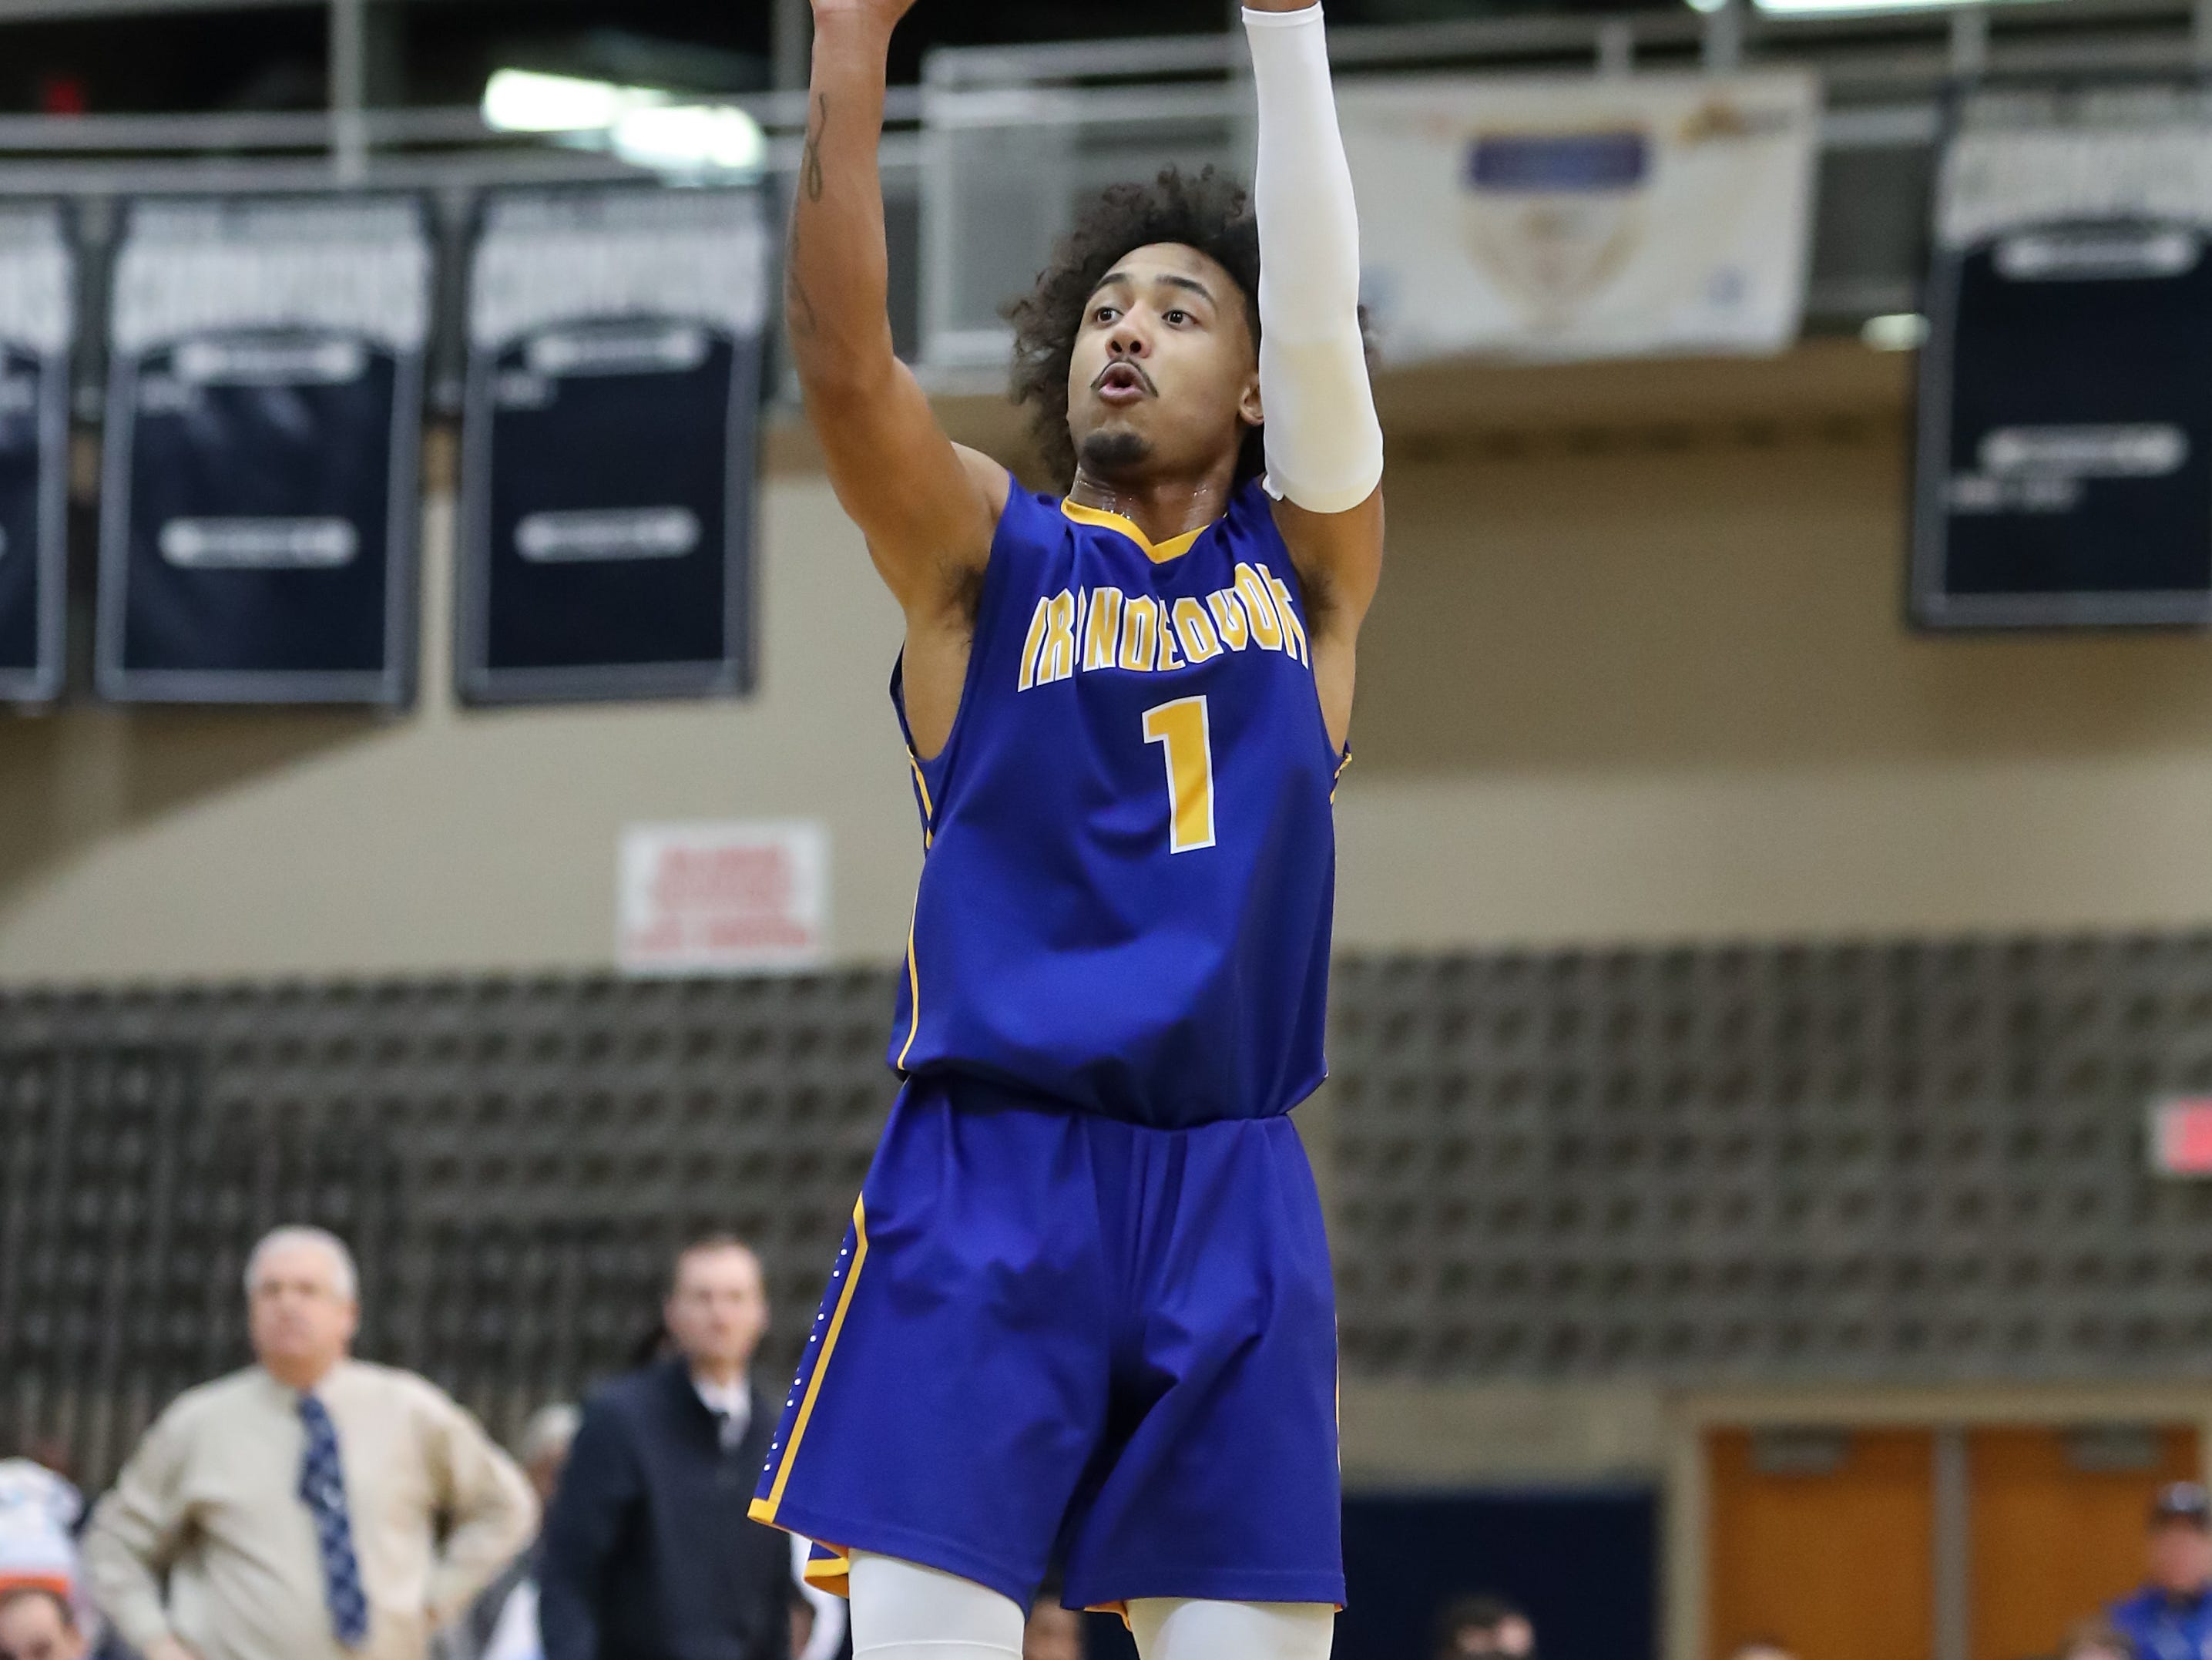 Irondequoit guard Freddy June Jr (1) attempts a 3-pointer against Gates Chili during a Section V high school boys basketball game at Gates Chili High School on Feb. 1, 2019.